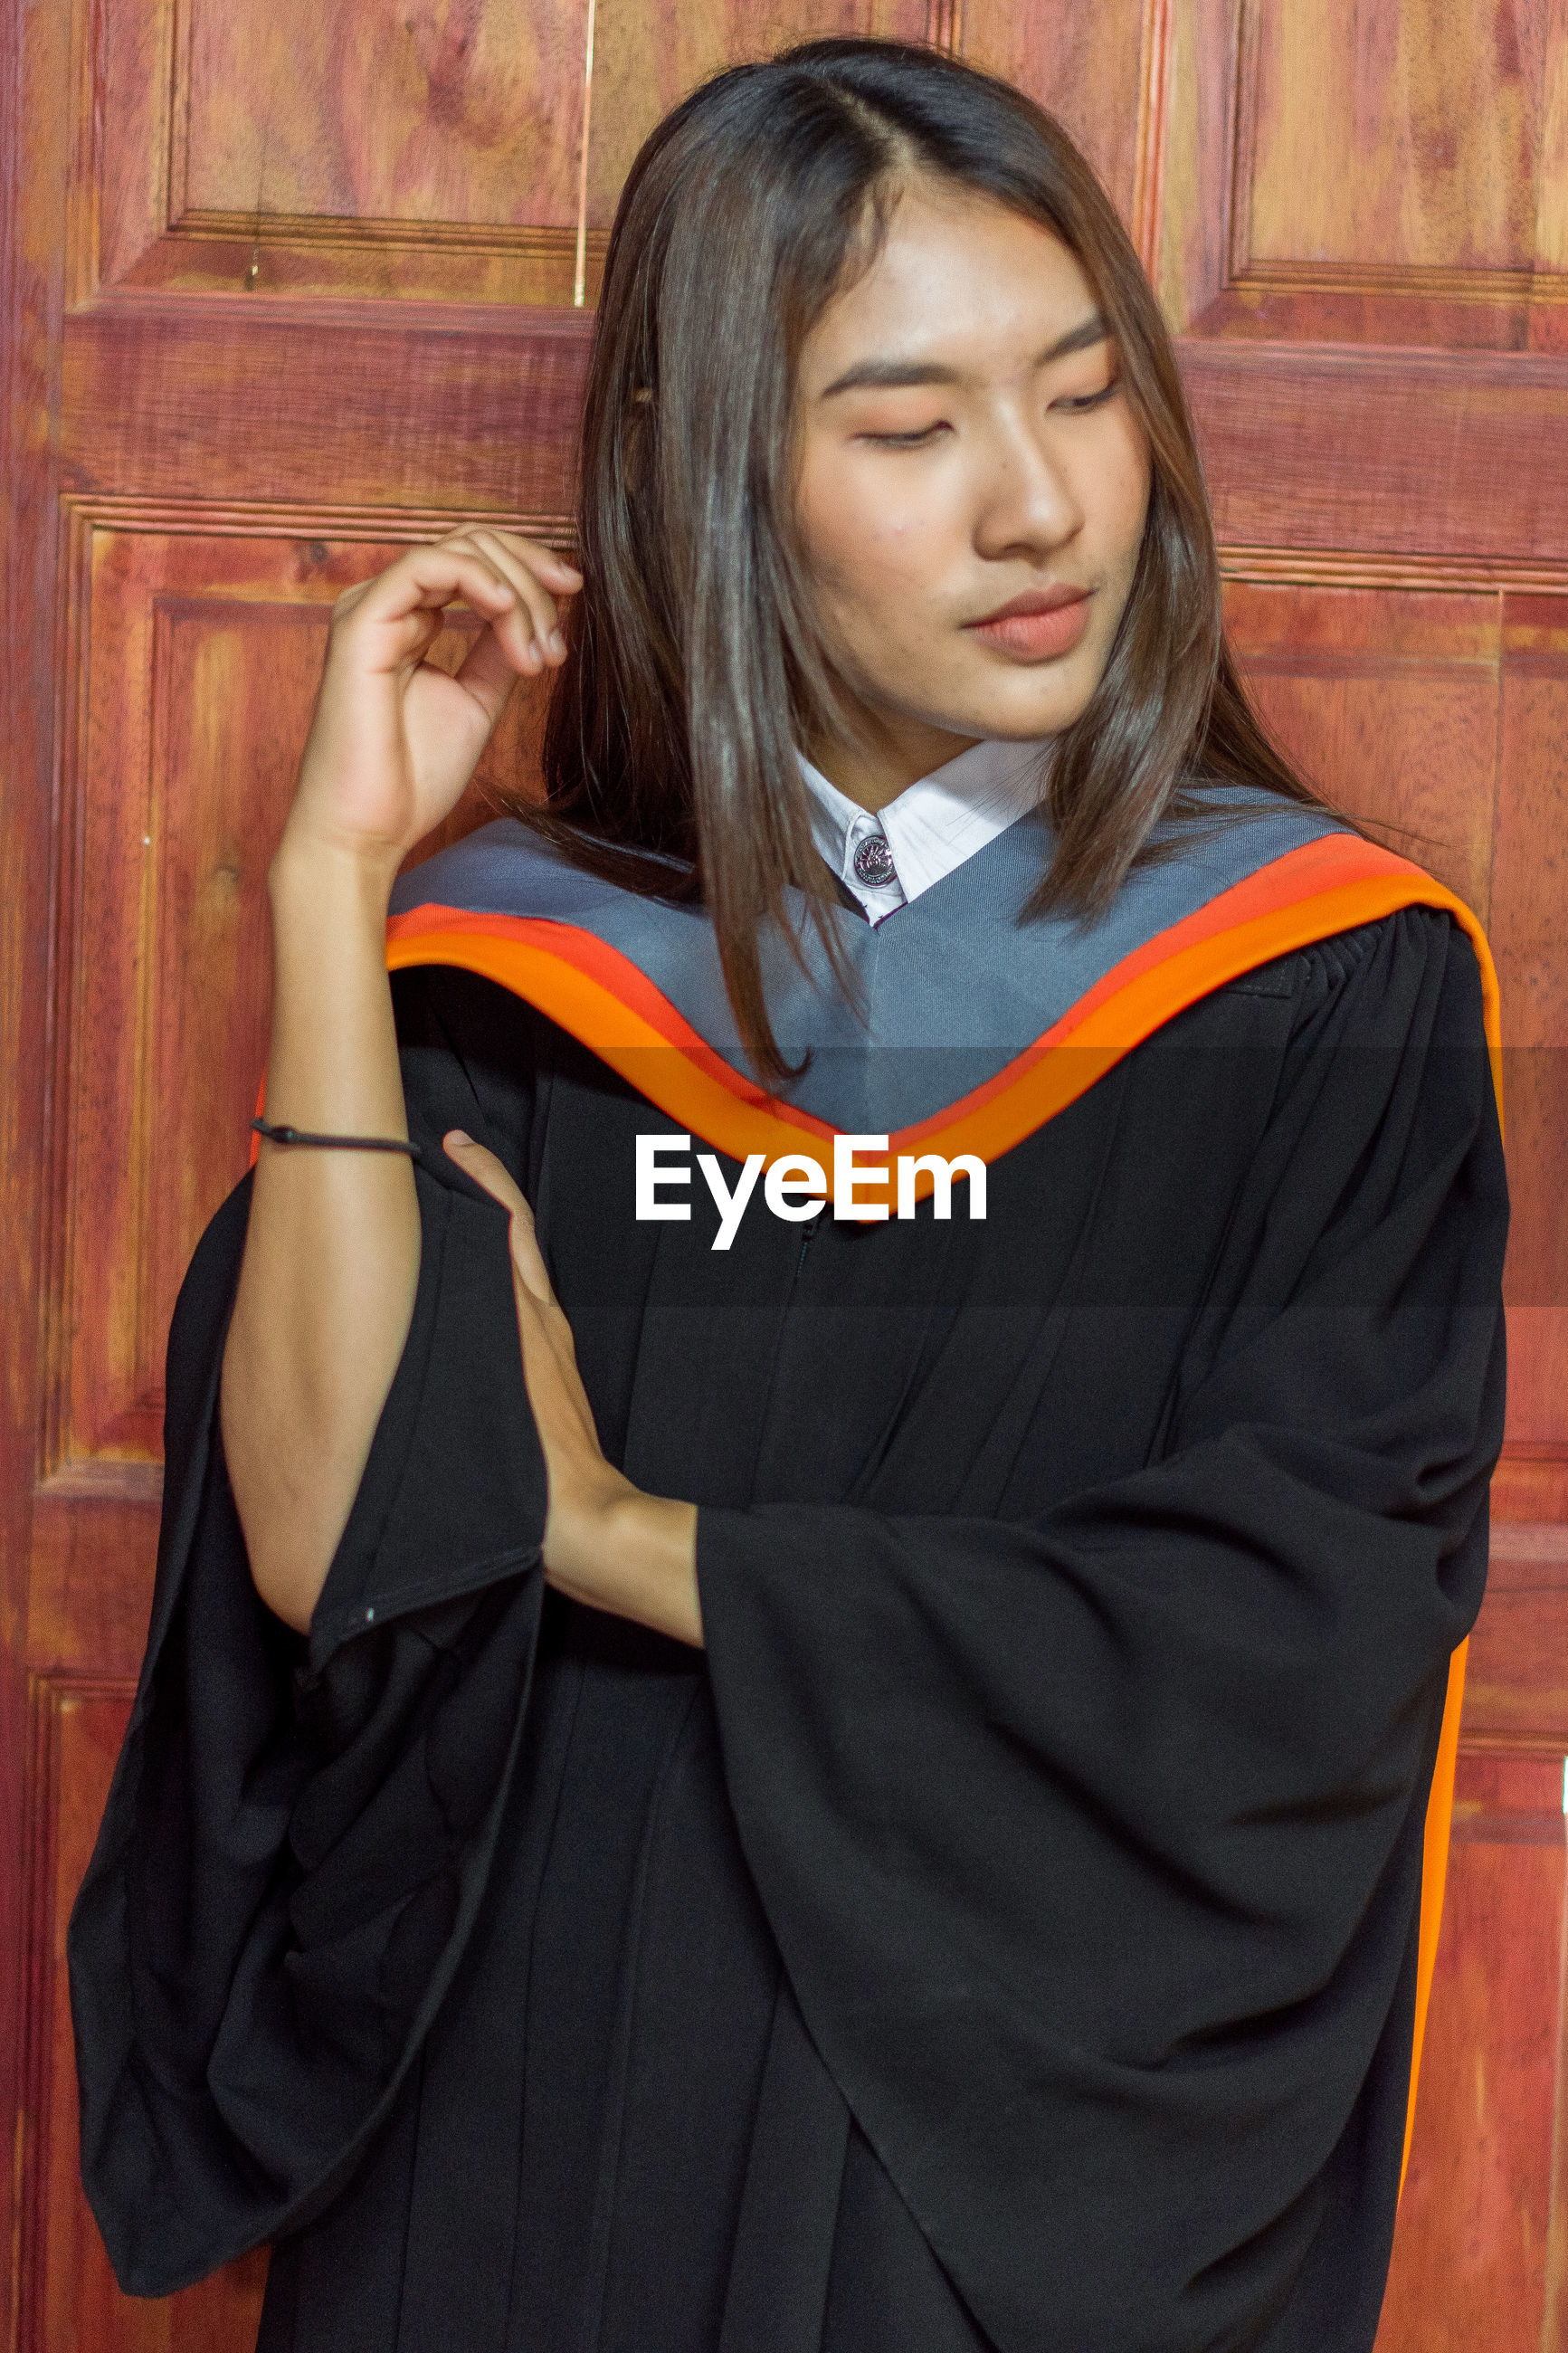 Thoughtful young woman in graduation gown standing door